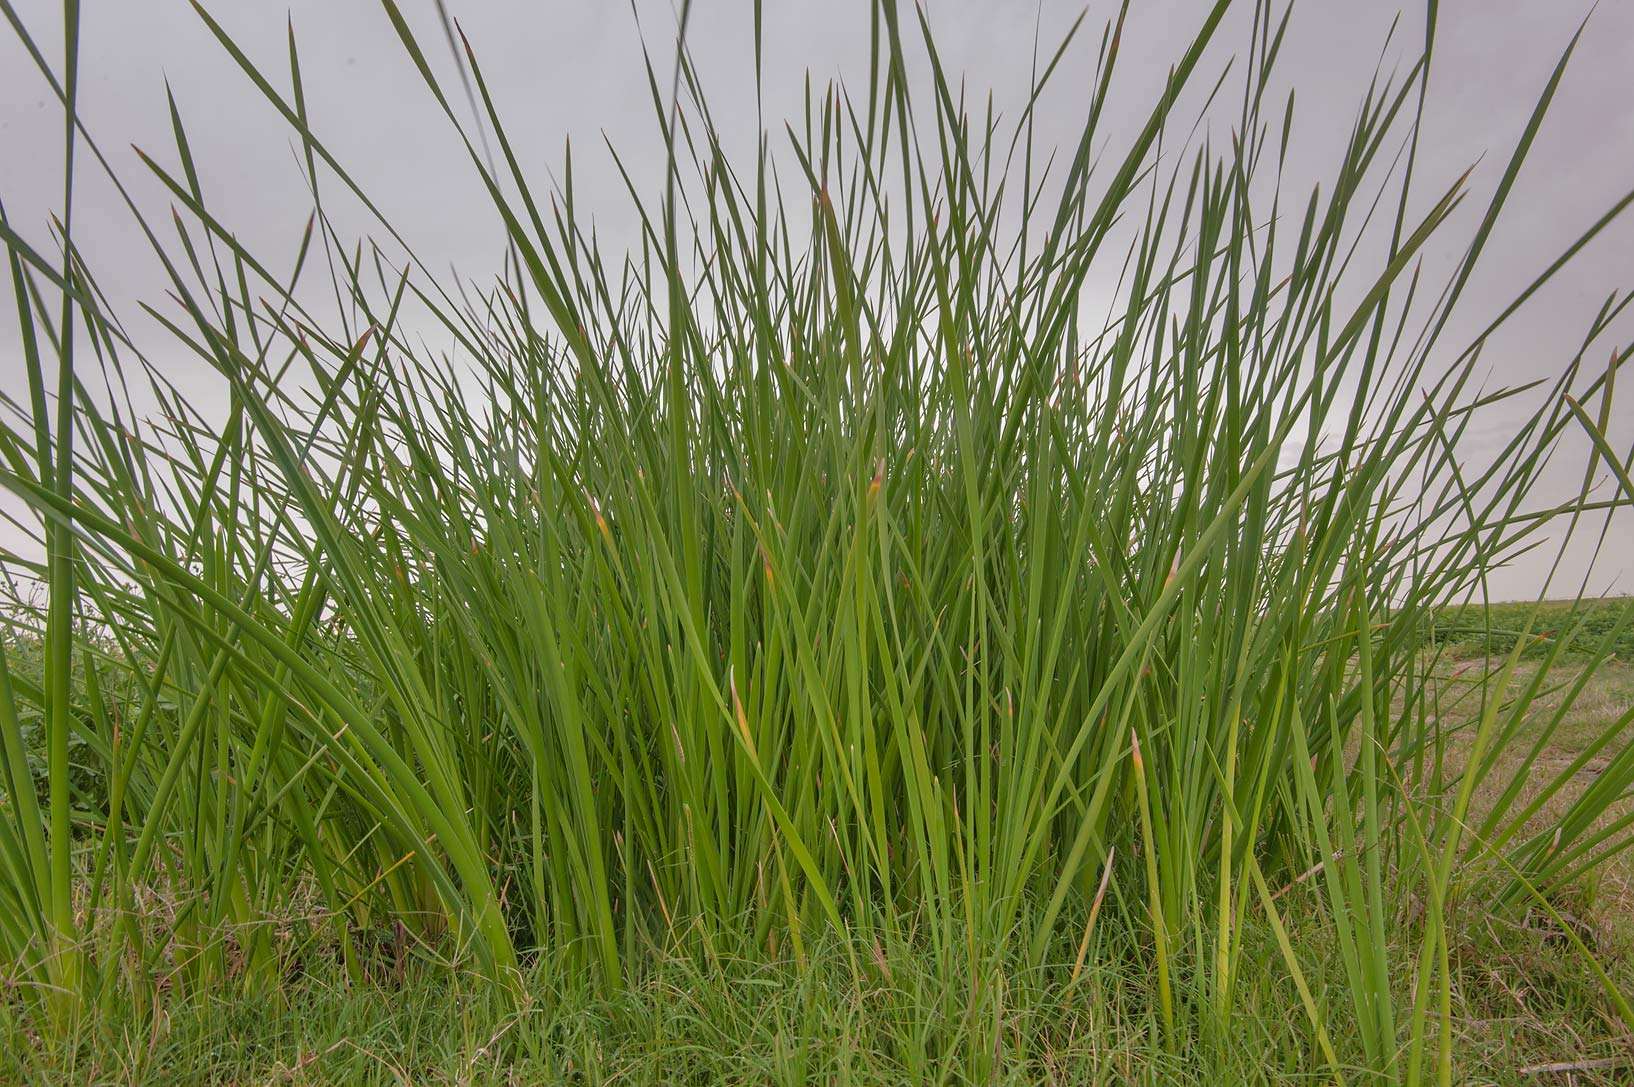 Tall grass southern cattail (Typha domingensis...in Irkhaya (Irkaya) Farms. Qatar